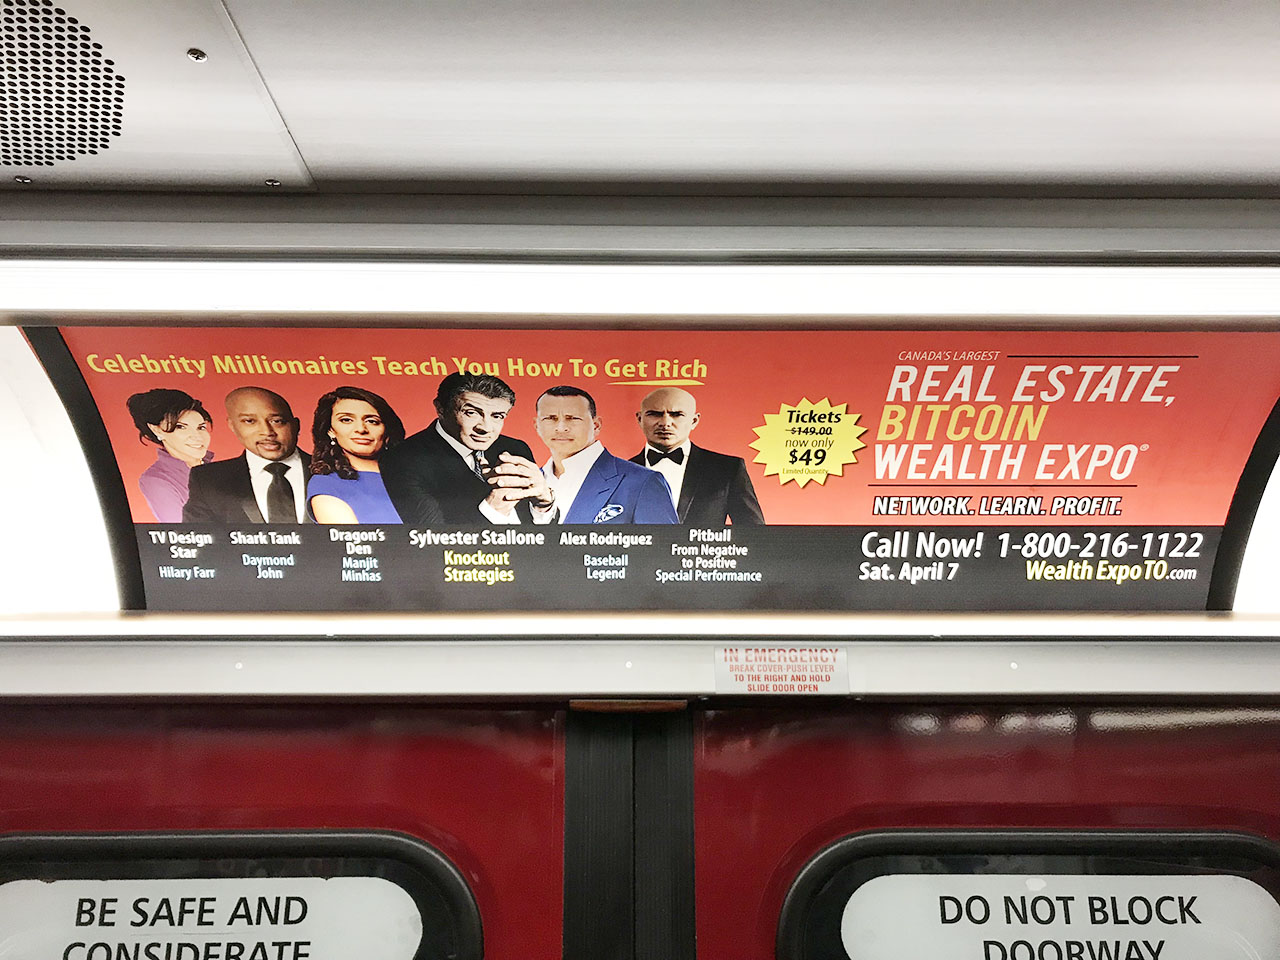 Real Estate Bitcoin Wealth Expo